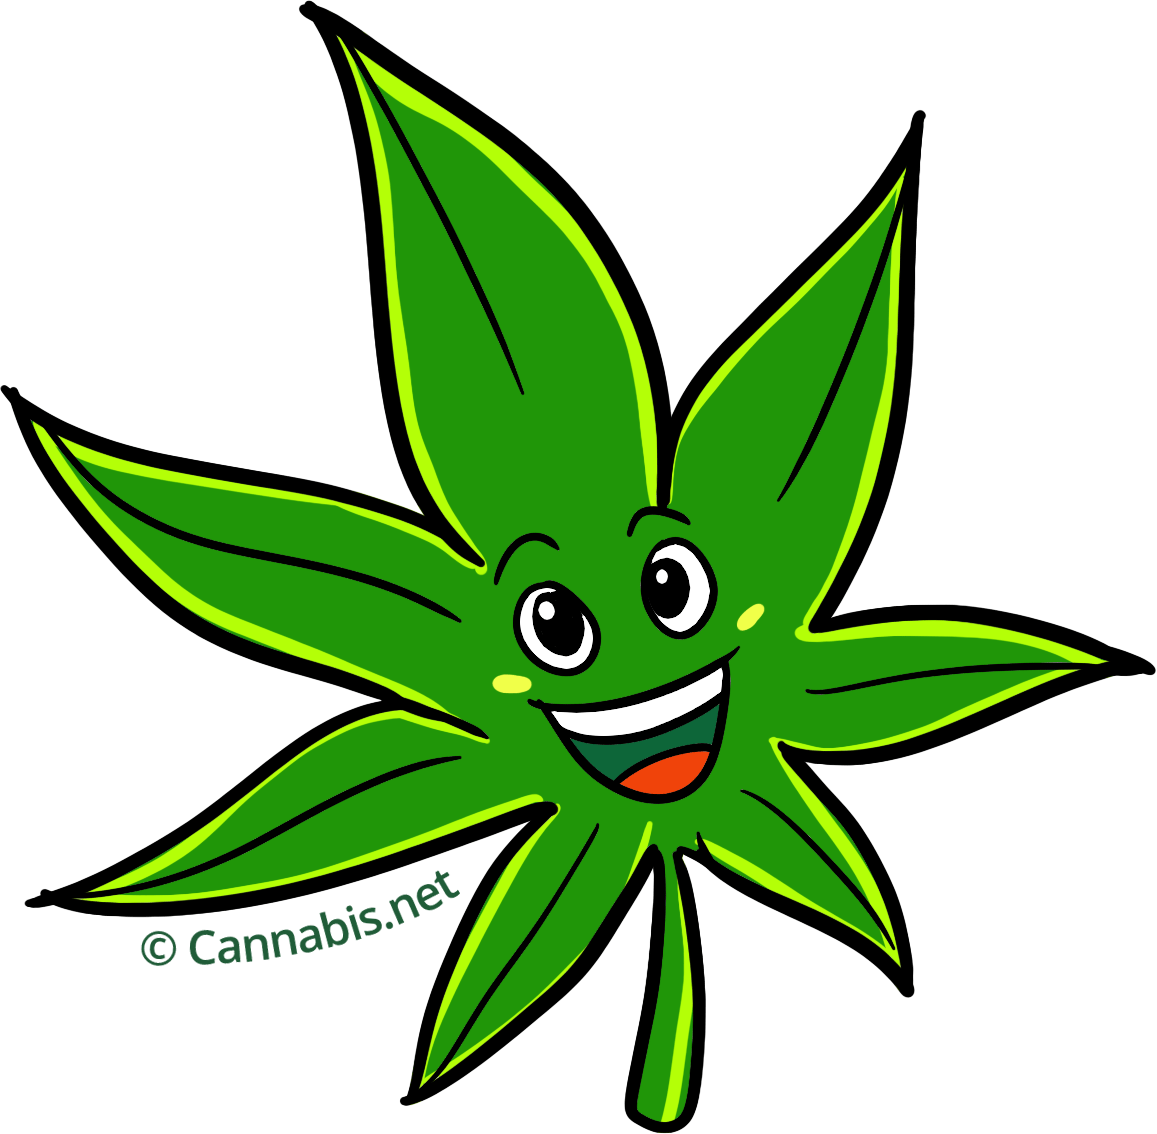 Pineapple express happy. Marijuana clipart daun